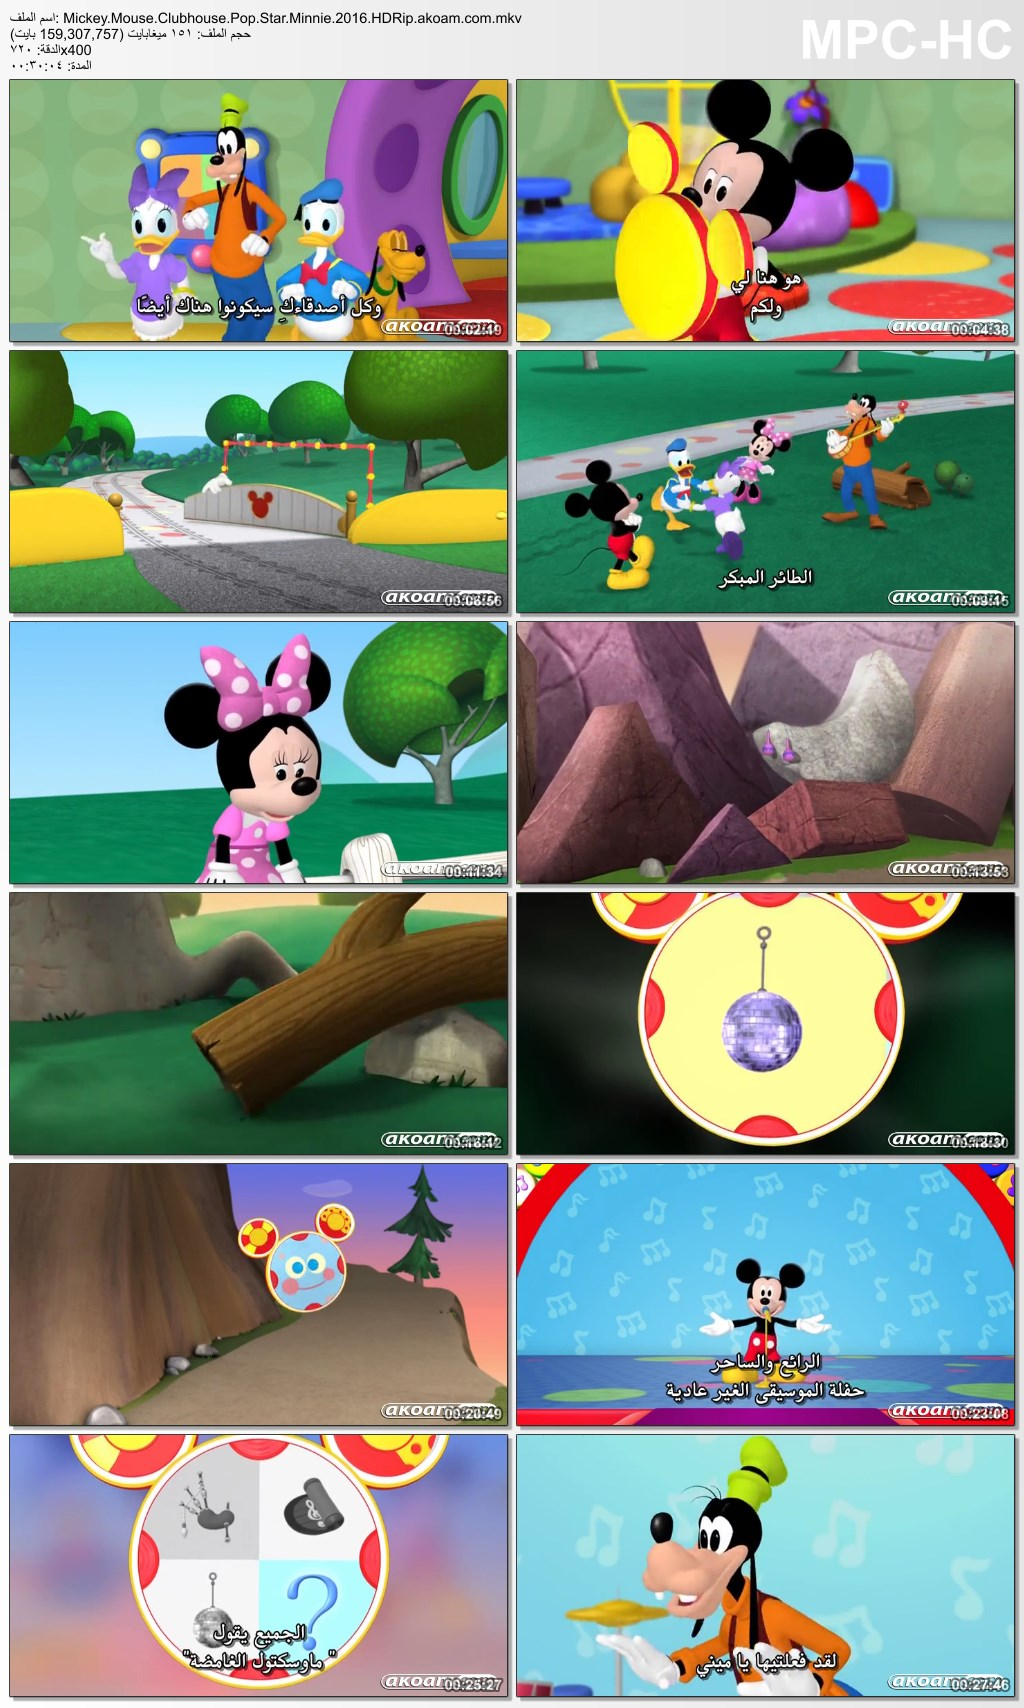 الانيميشن,الكوميديا,Mickey Mouse Clubhouse Pop Star Minnie